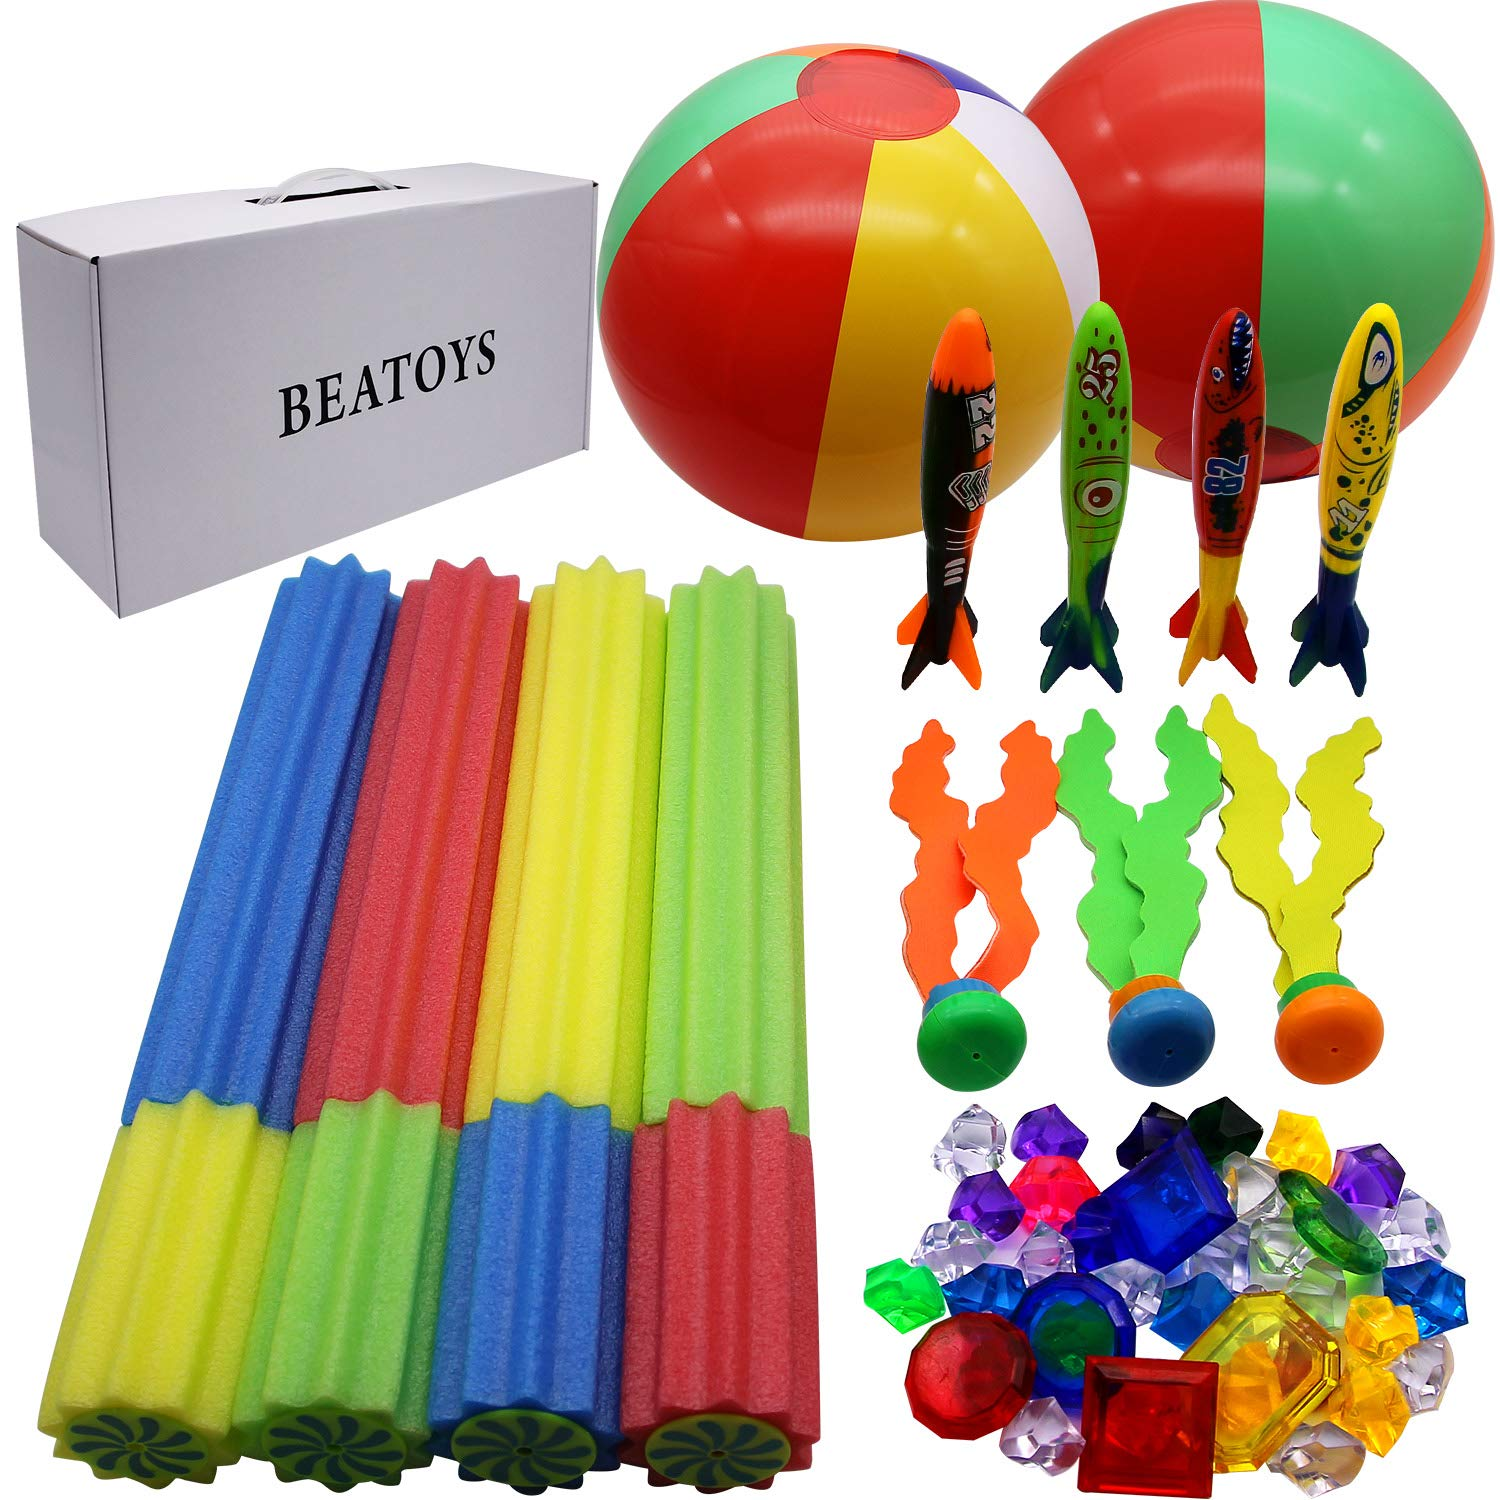 JOINBO BEATOYS 41 PCS Summer Diving Sets with 4 Water Blaster, 4 Torpedoes, 3 Diving Seaweeds, 2 Beach Balls, 8 gems and 20 Diving Jewels